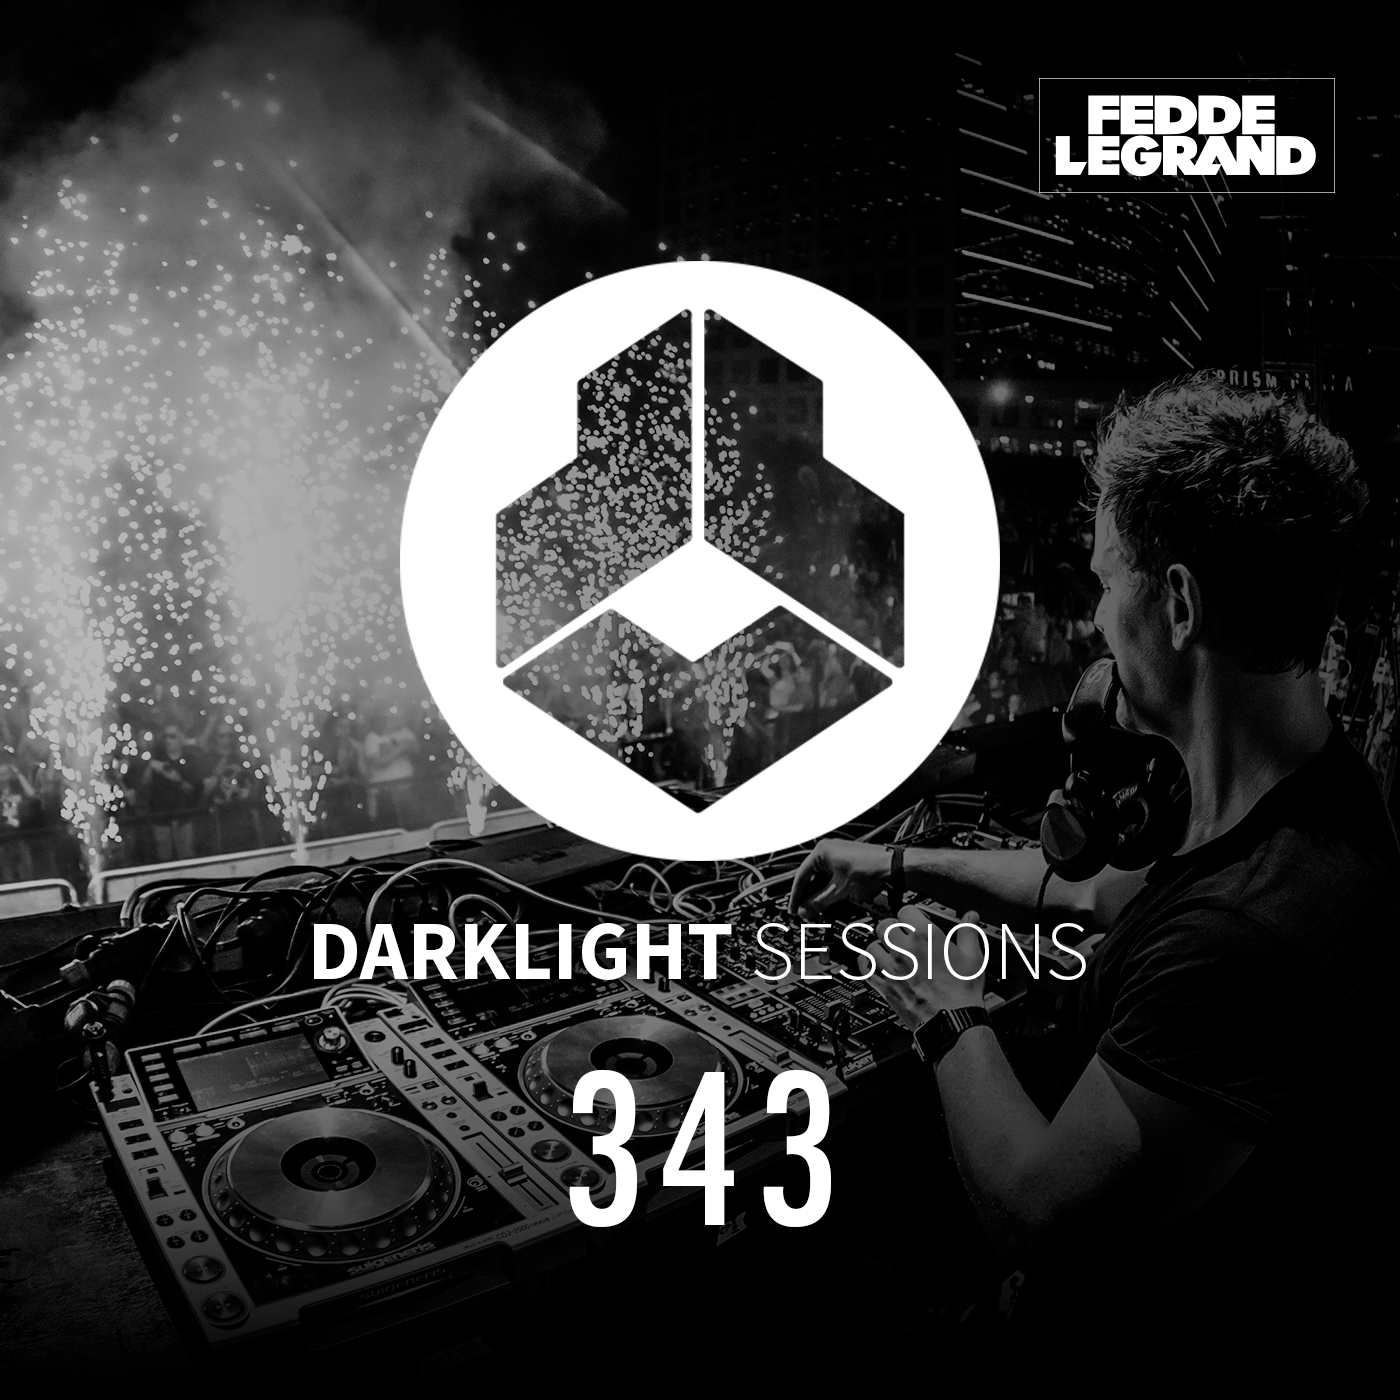 Darklight Sessions 343